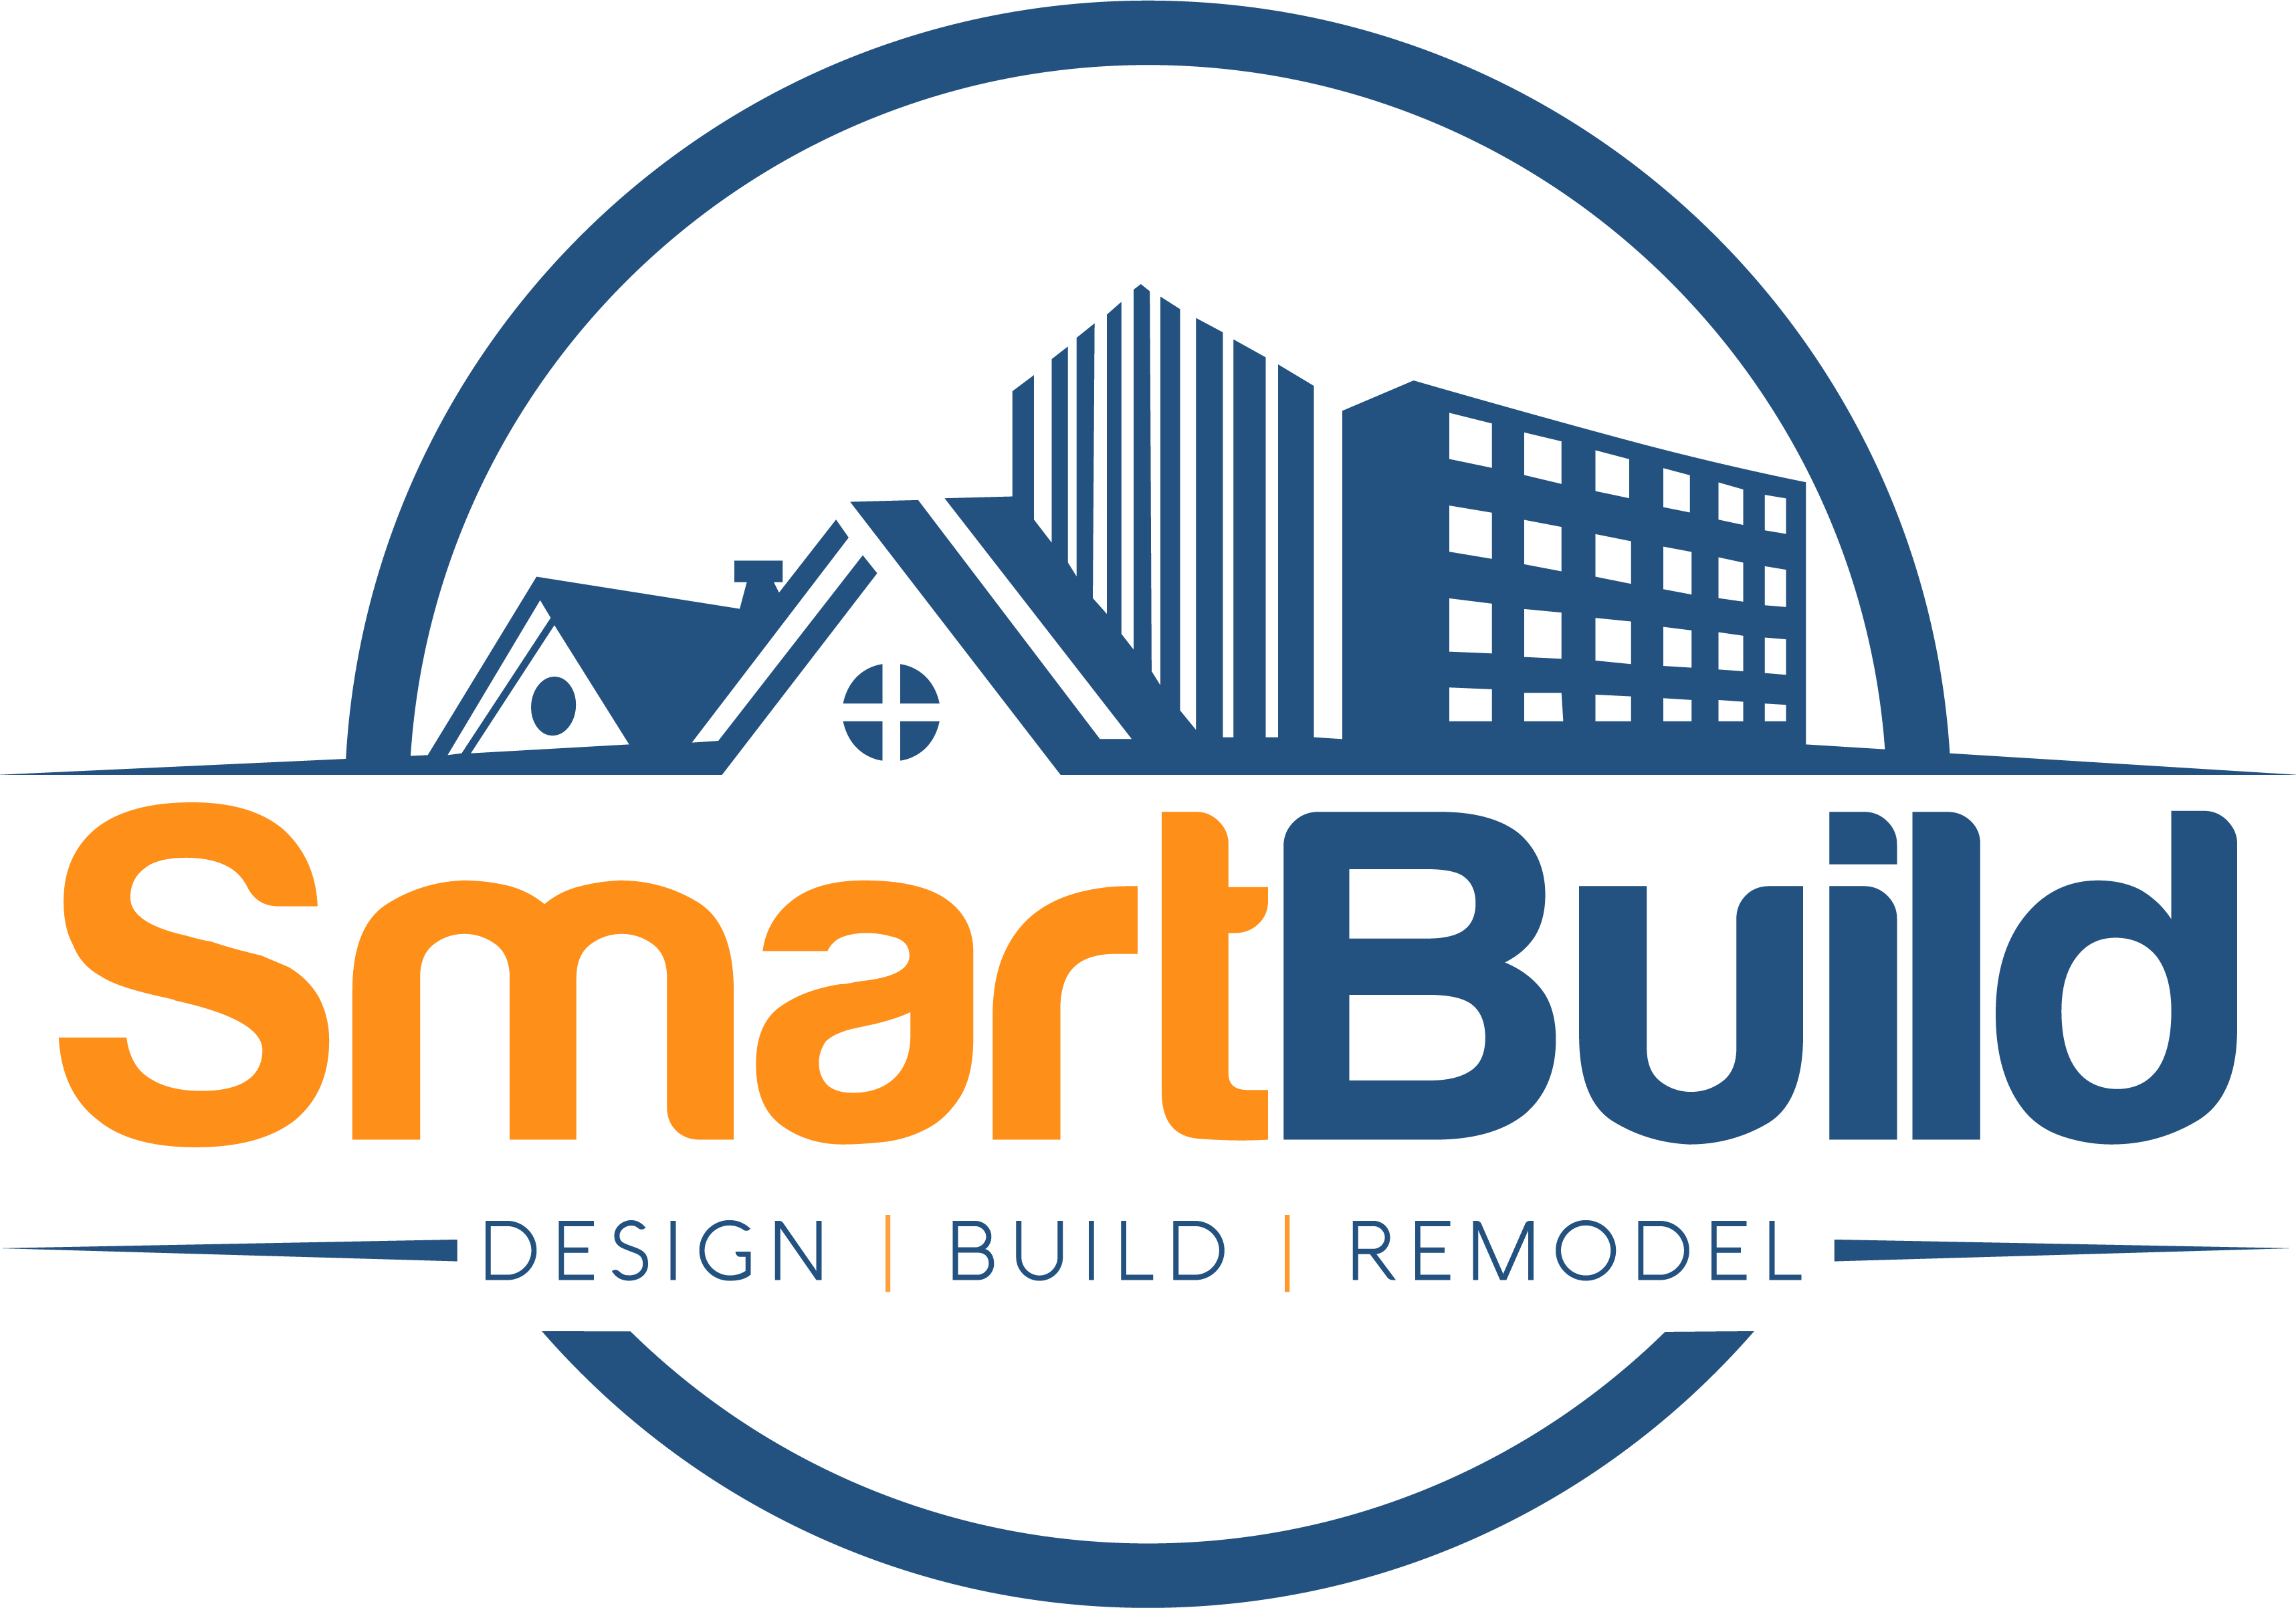 Smart Build is a division of Smart Coats